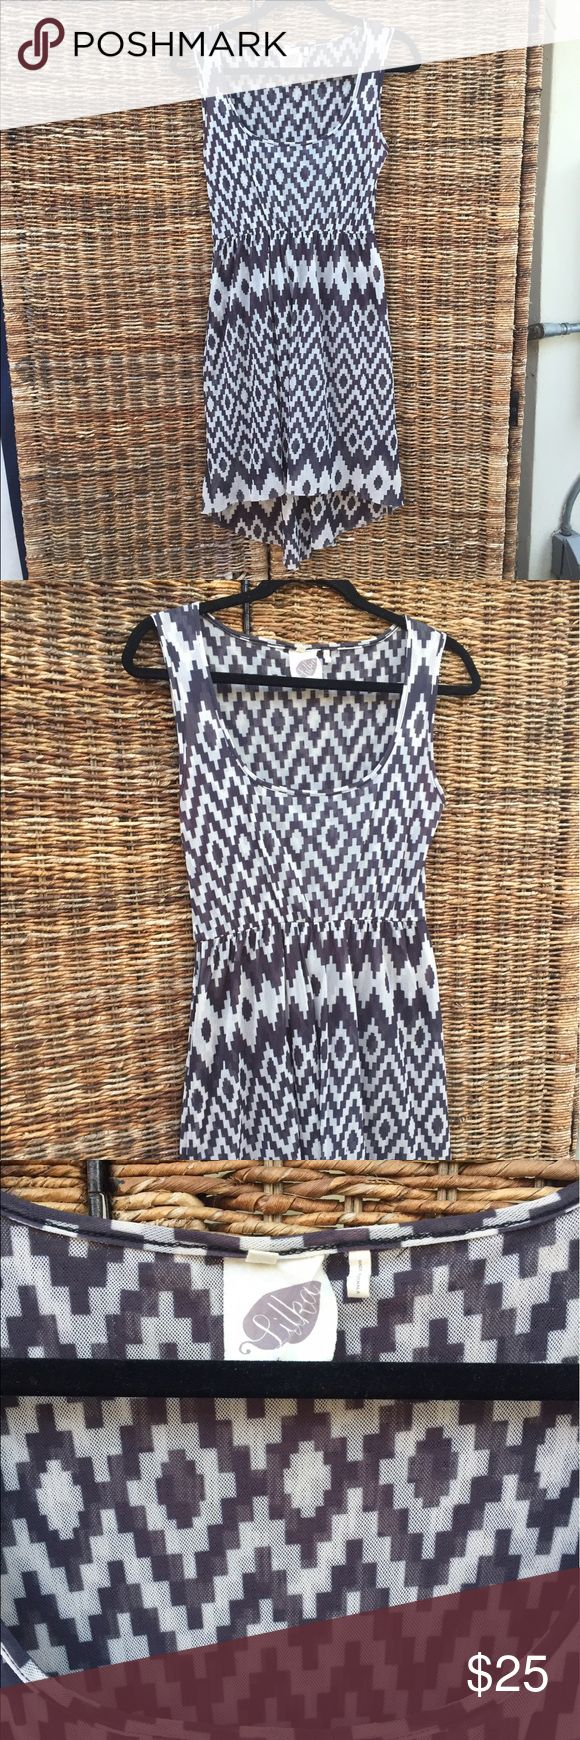 Anthro Aztec print dress Double lined high low dress Anthropologie Dresses Midi